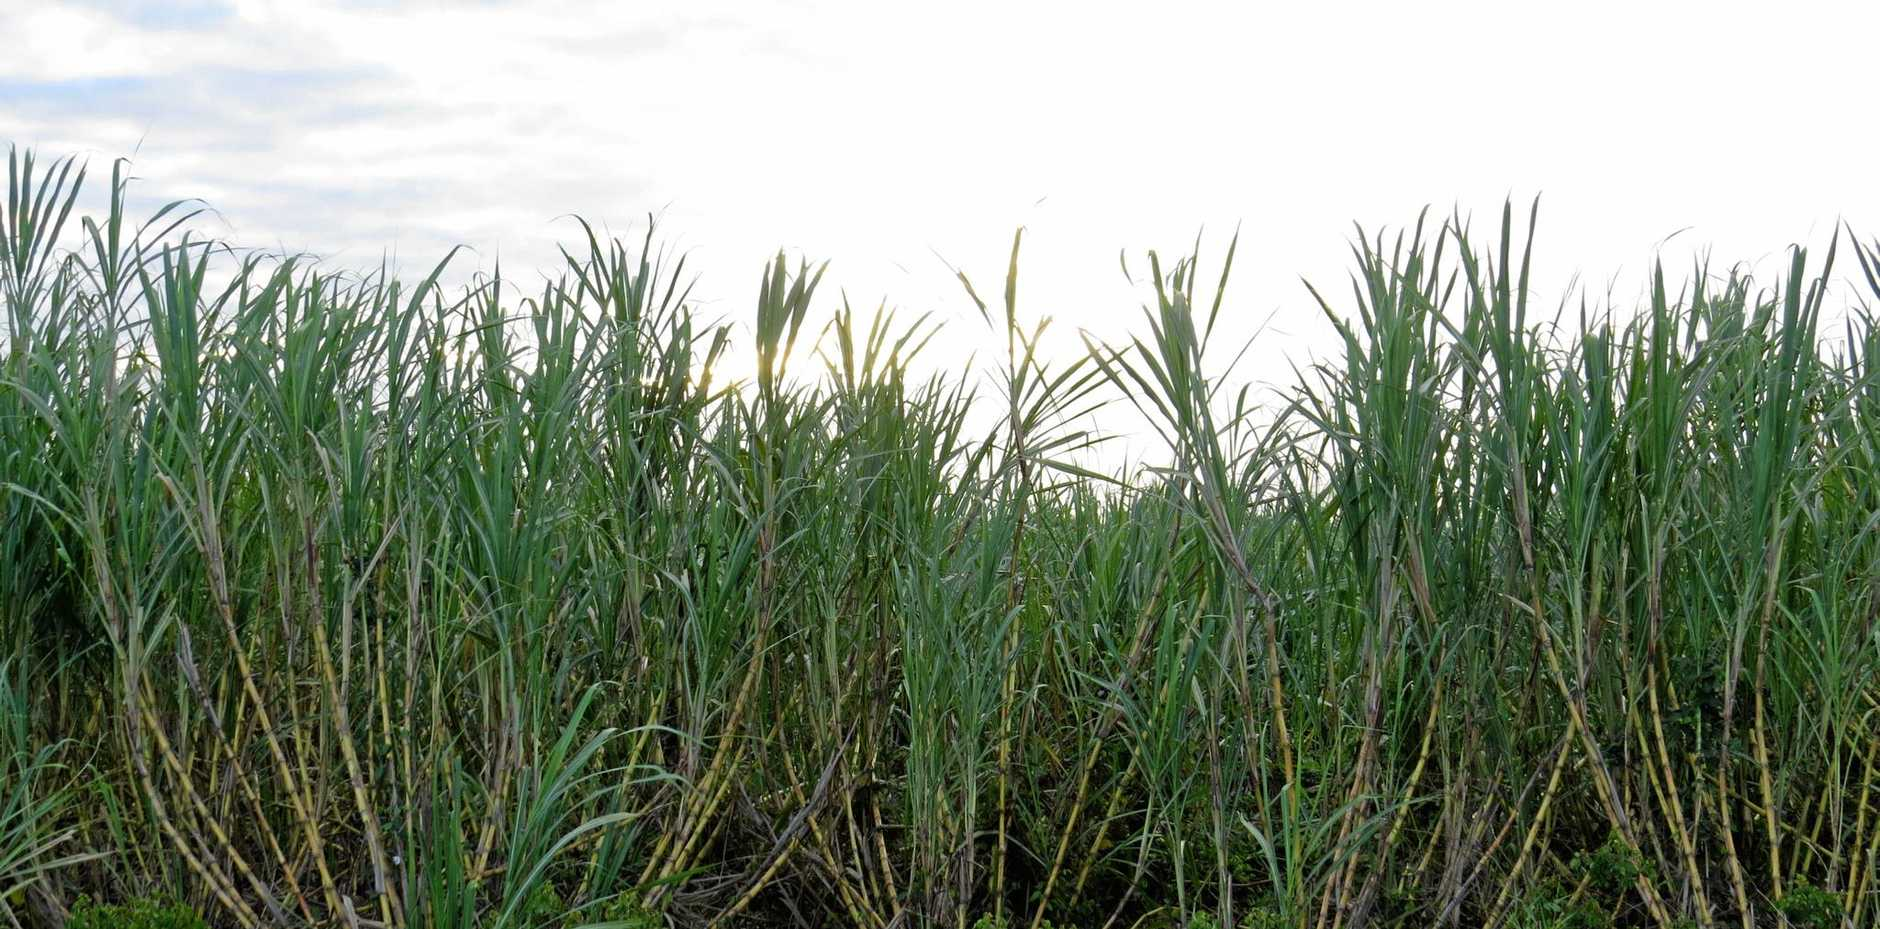 As crushing approaches, the condition of the cane is not expected to yield a bumper crop